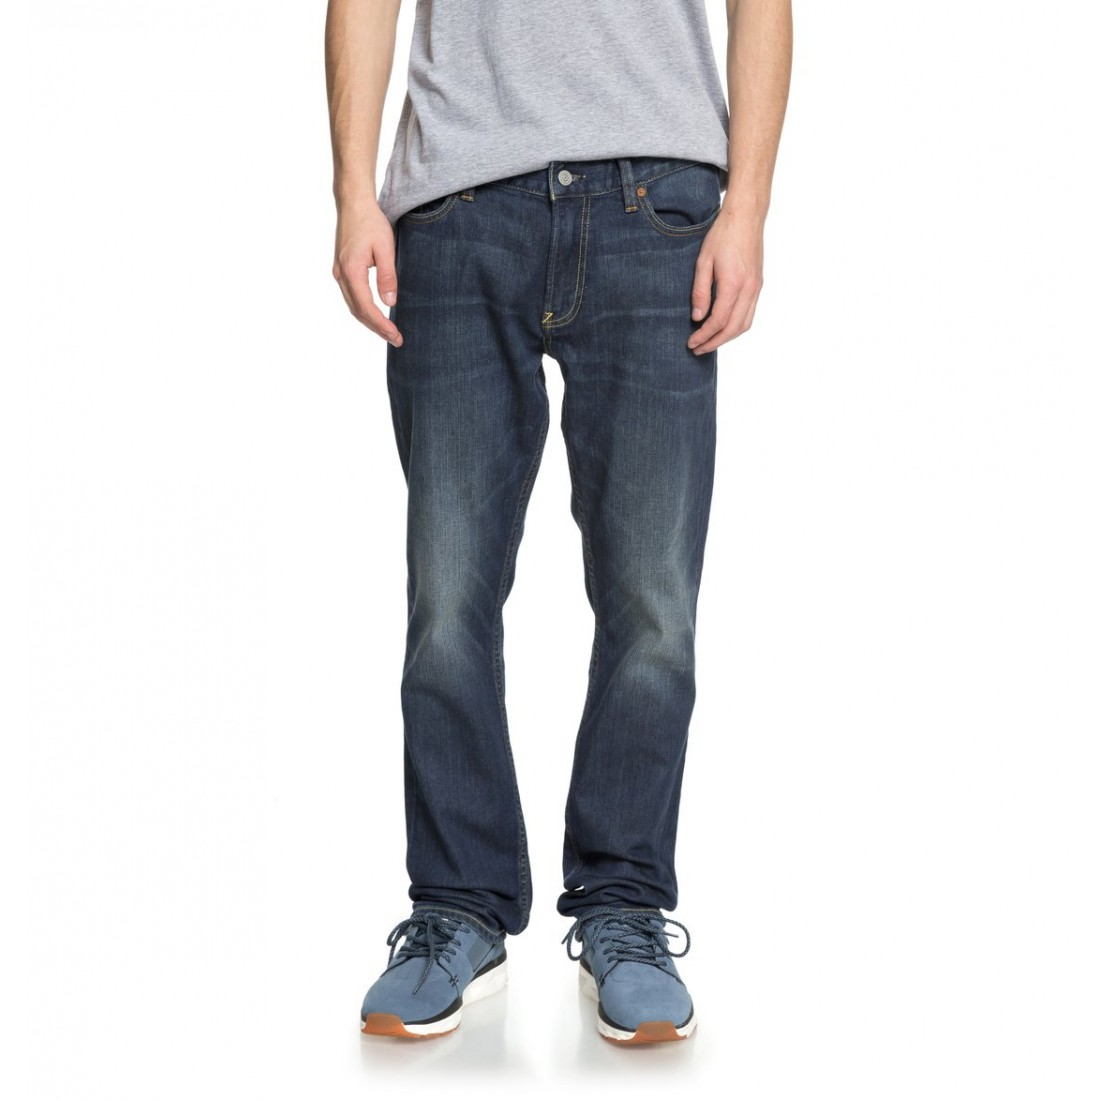 JEAN DC WORKER STRAIGHT medium stone